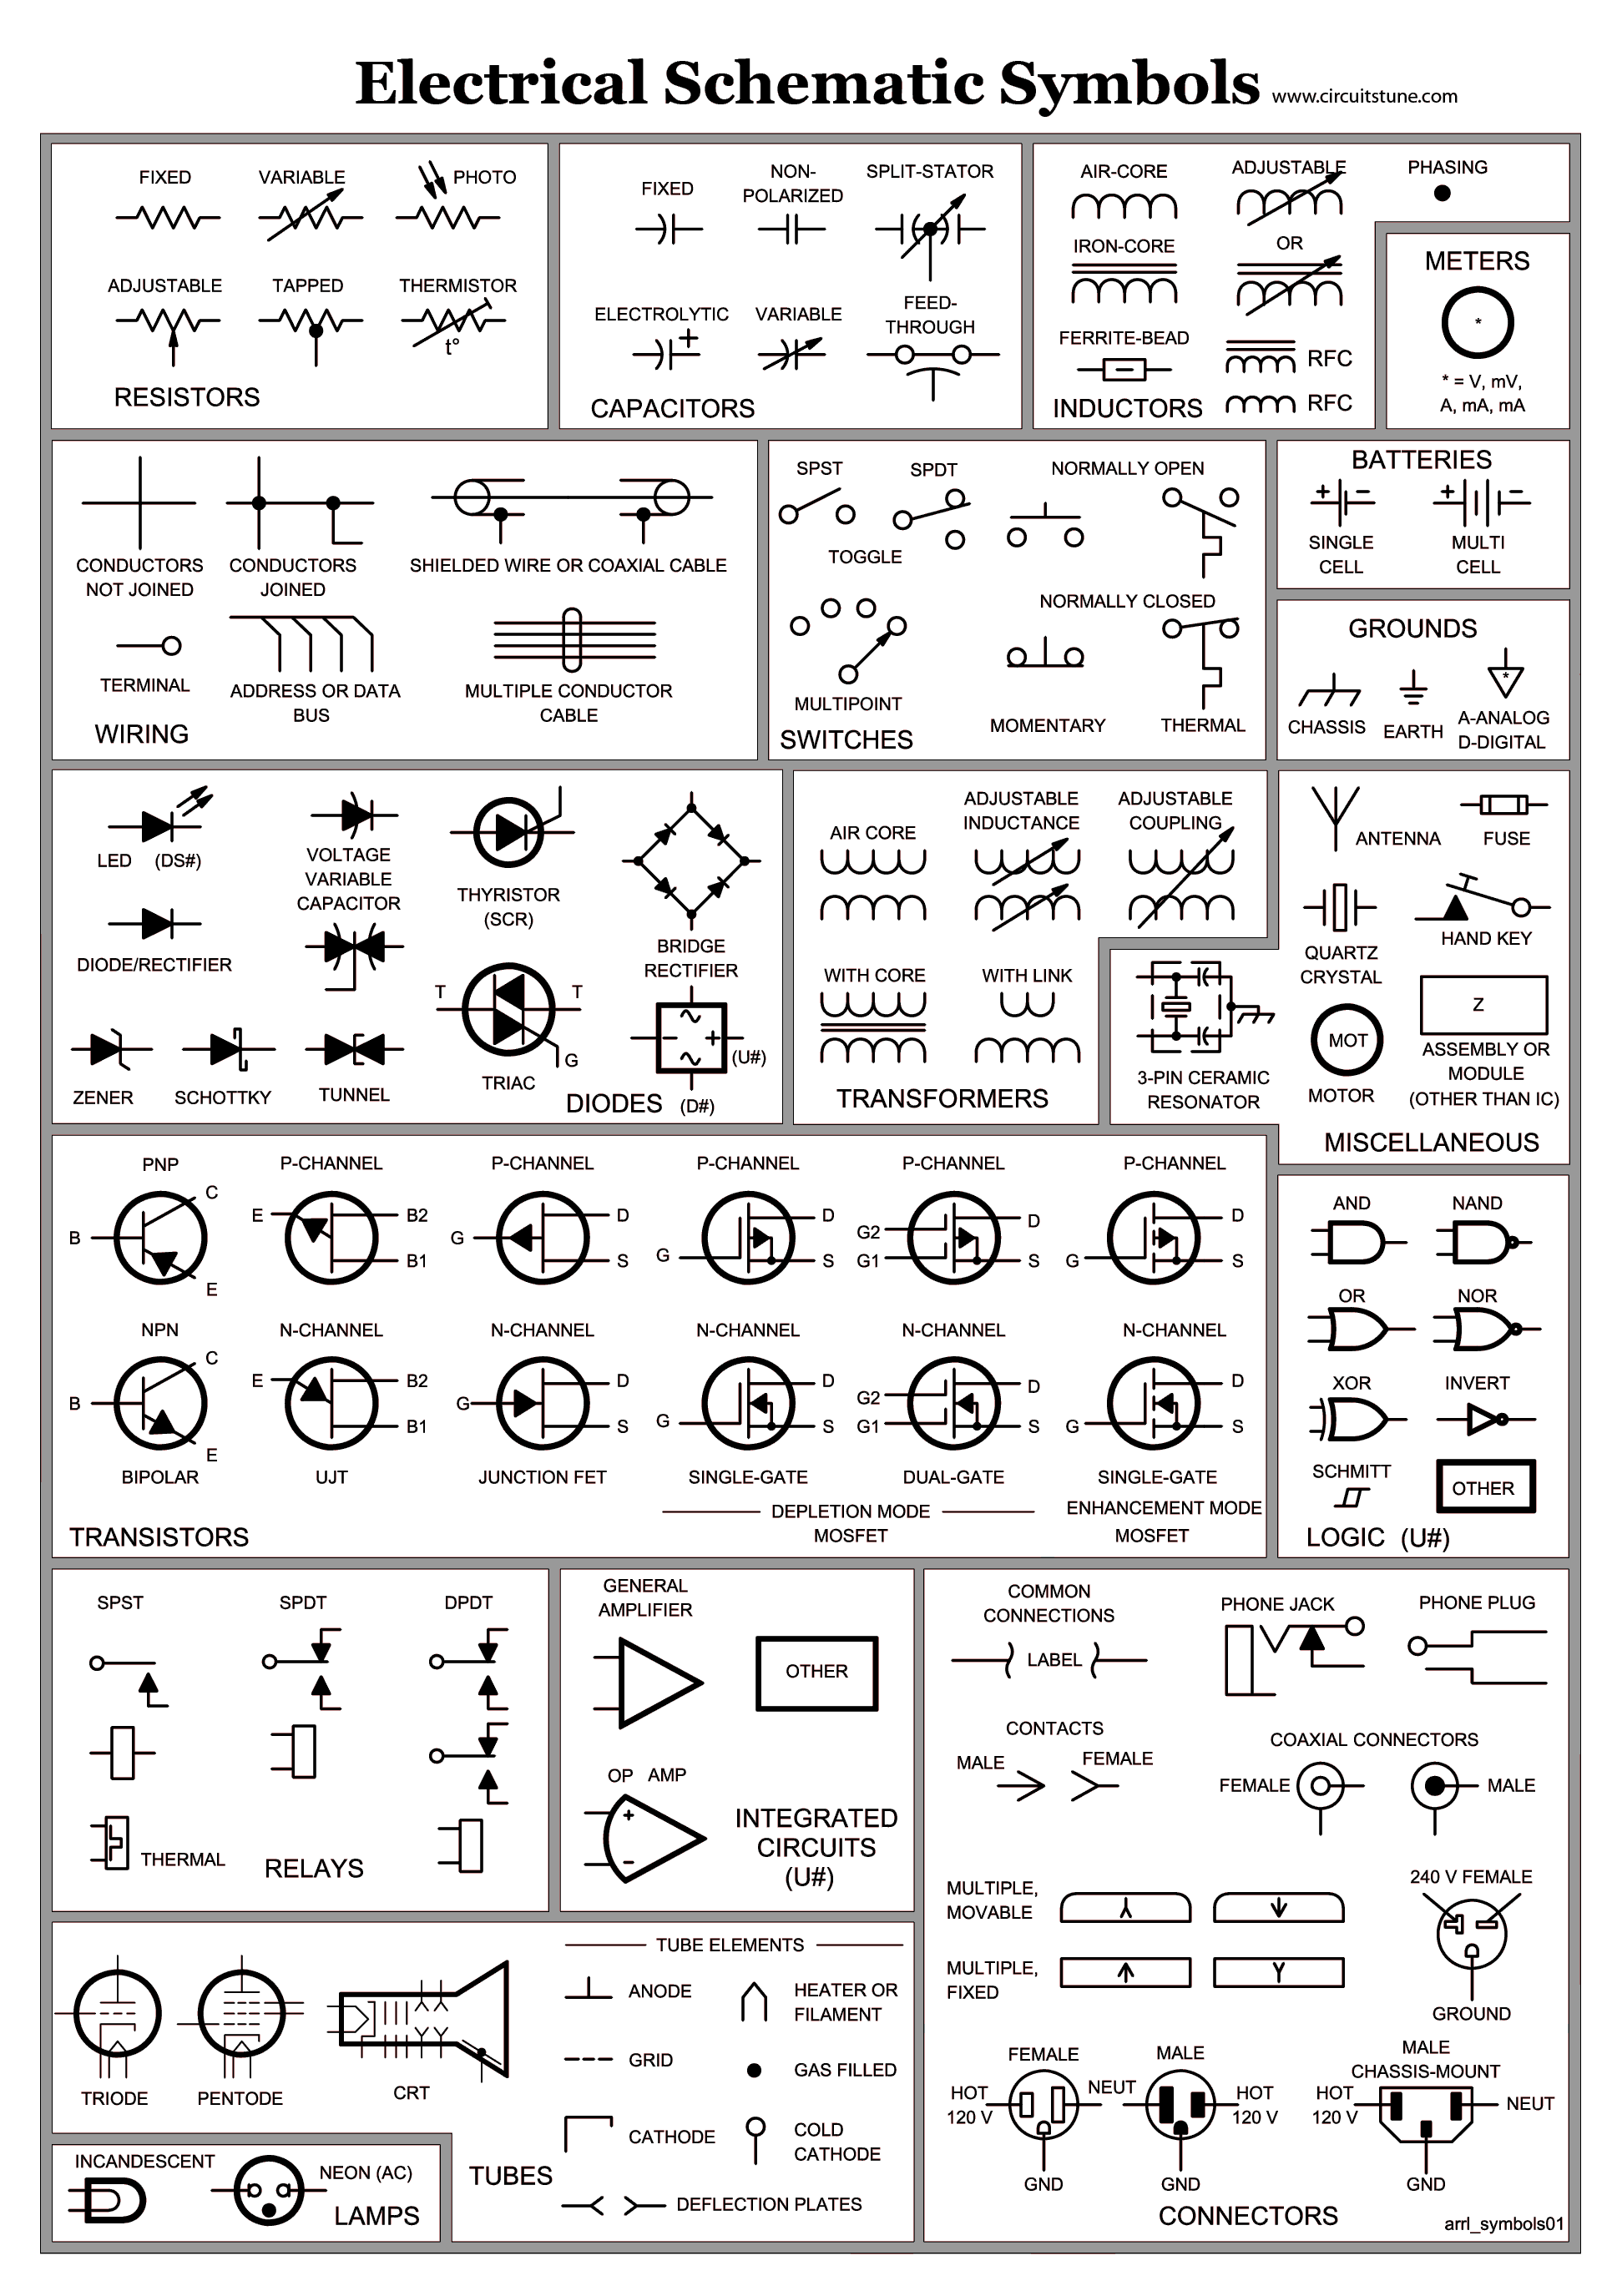 a65d176364692d2ebe913b58a654cfc3 electrical schematic symbols wire diagram symbols automotive basic ac wiring diagrams at n-0.co